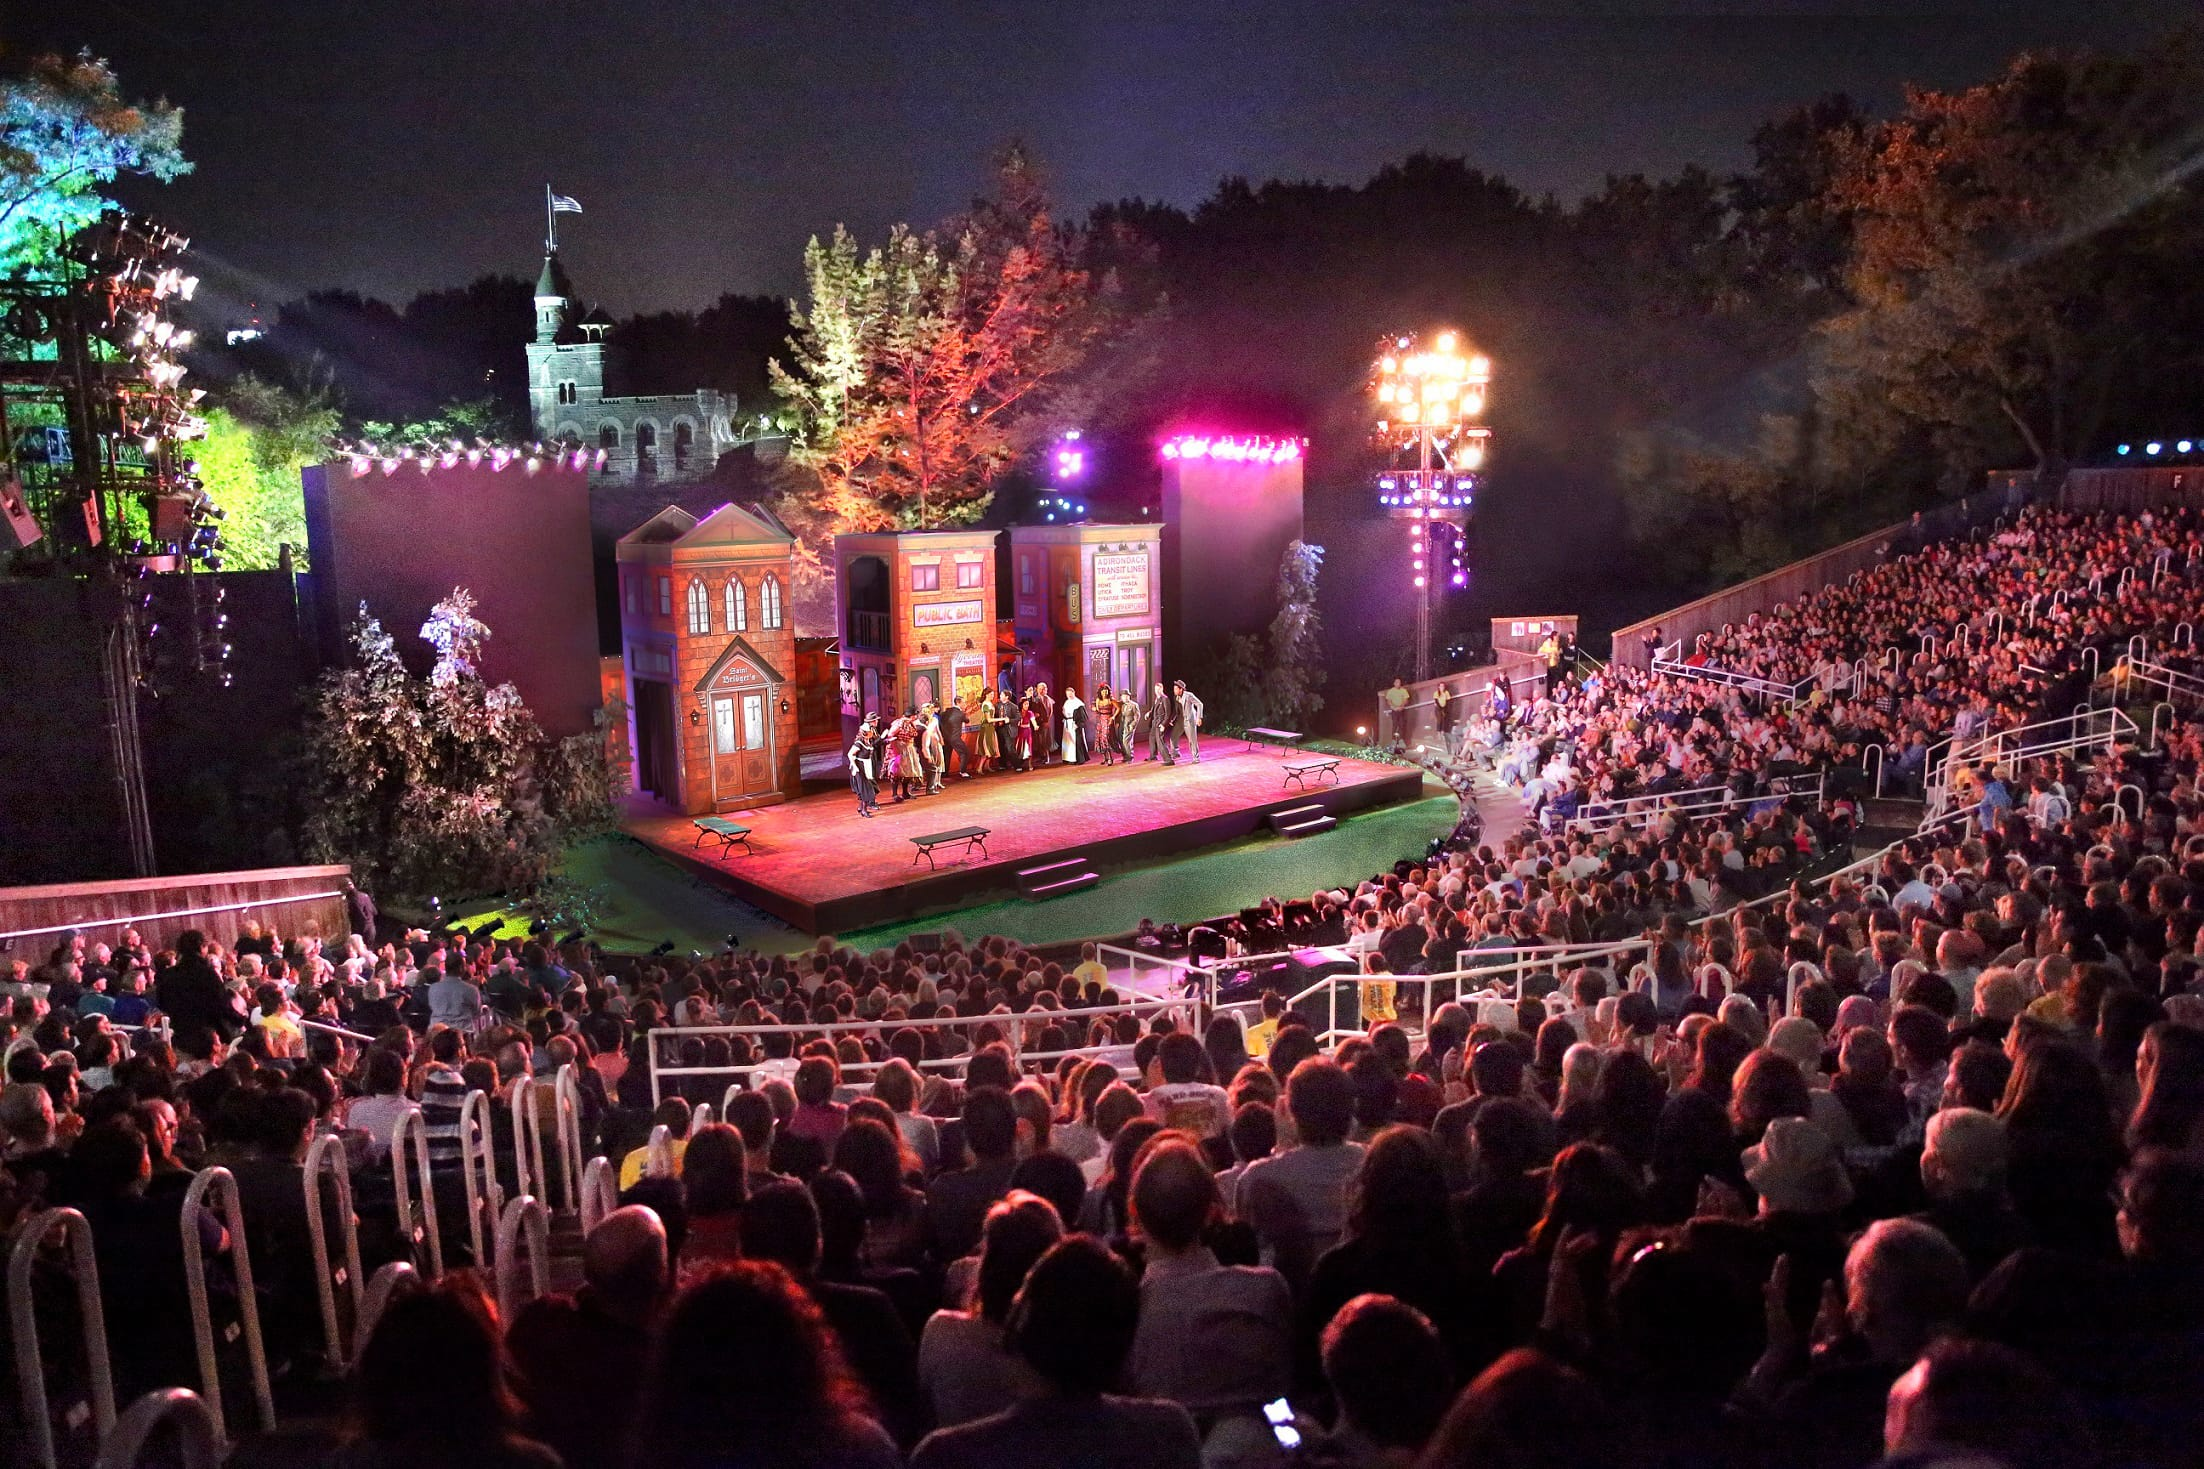 H/O: The Public Theater's Free Shakespeare in the Park